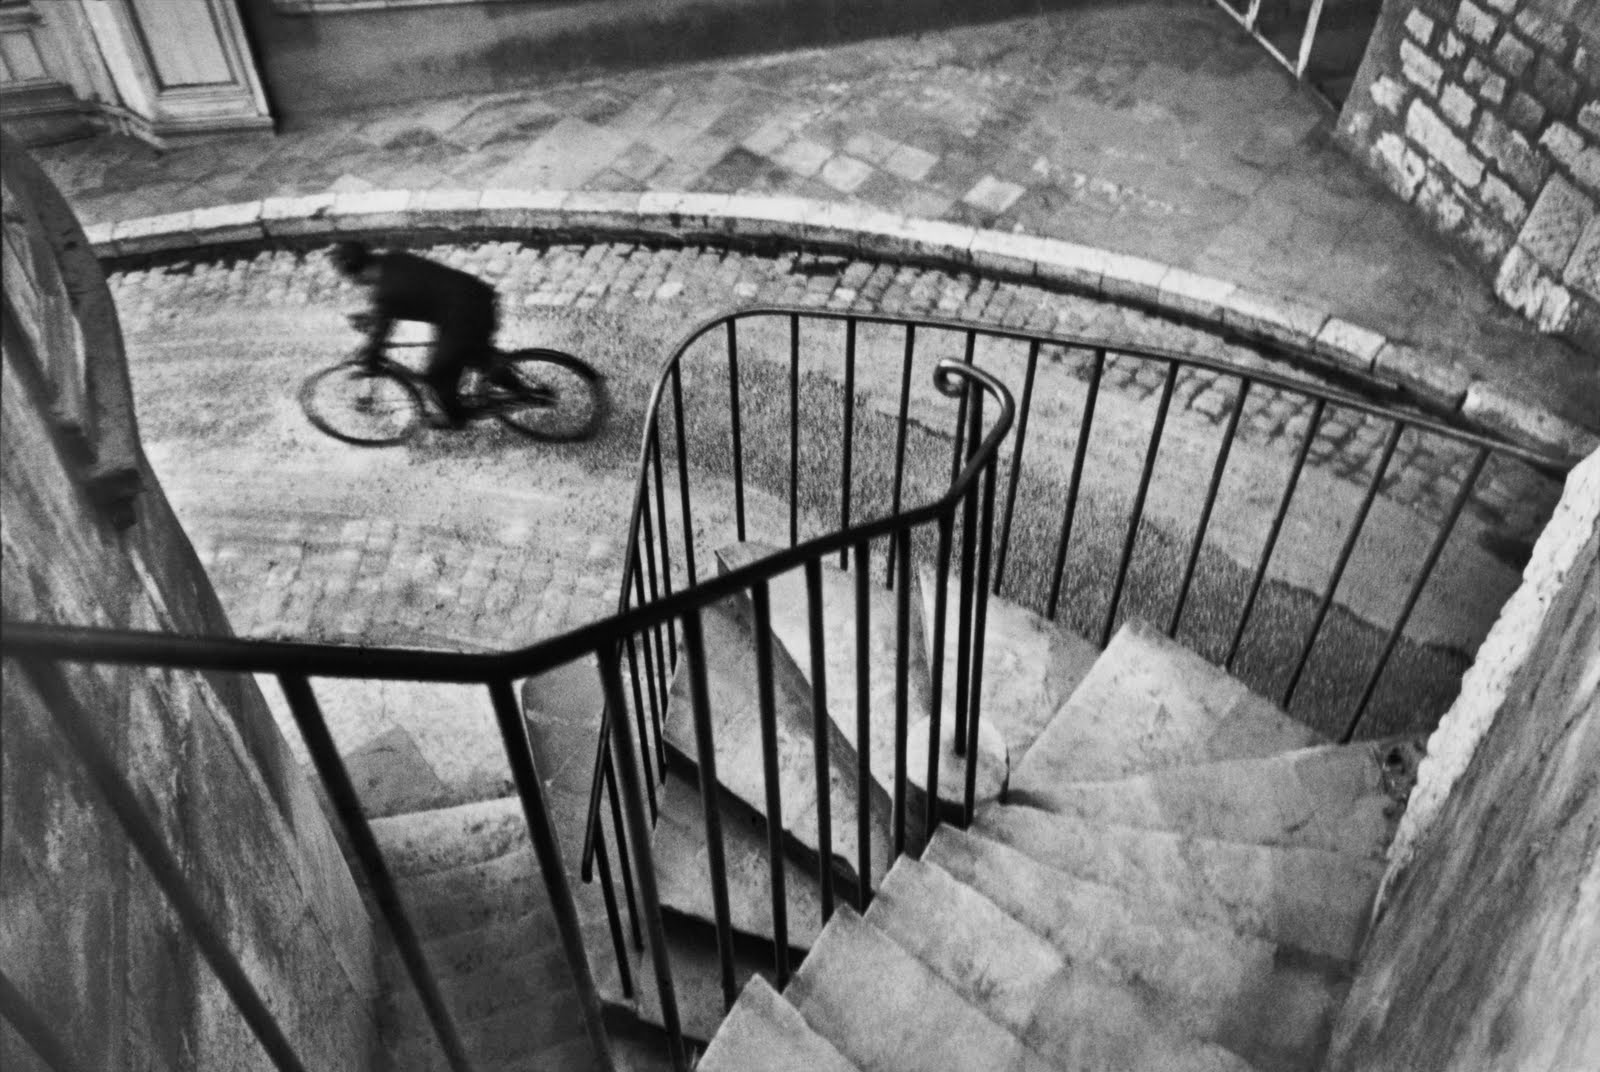 1 henri-cartier-bresson-hyeres-france-1932-bicycle-blur-spiral-staircase